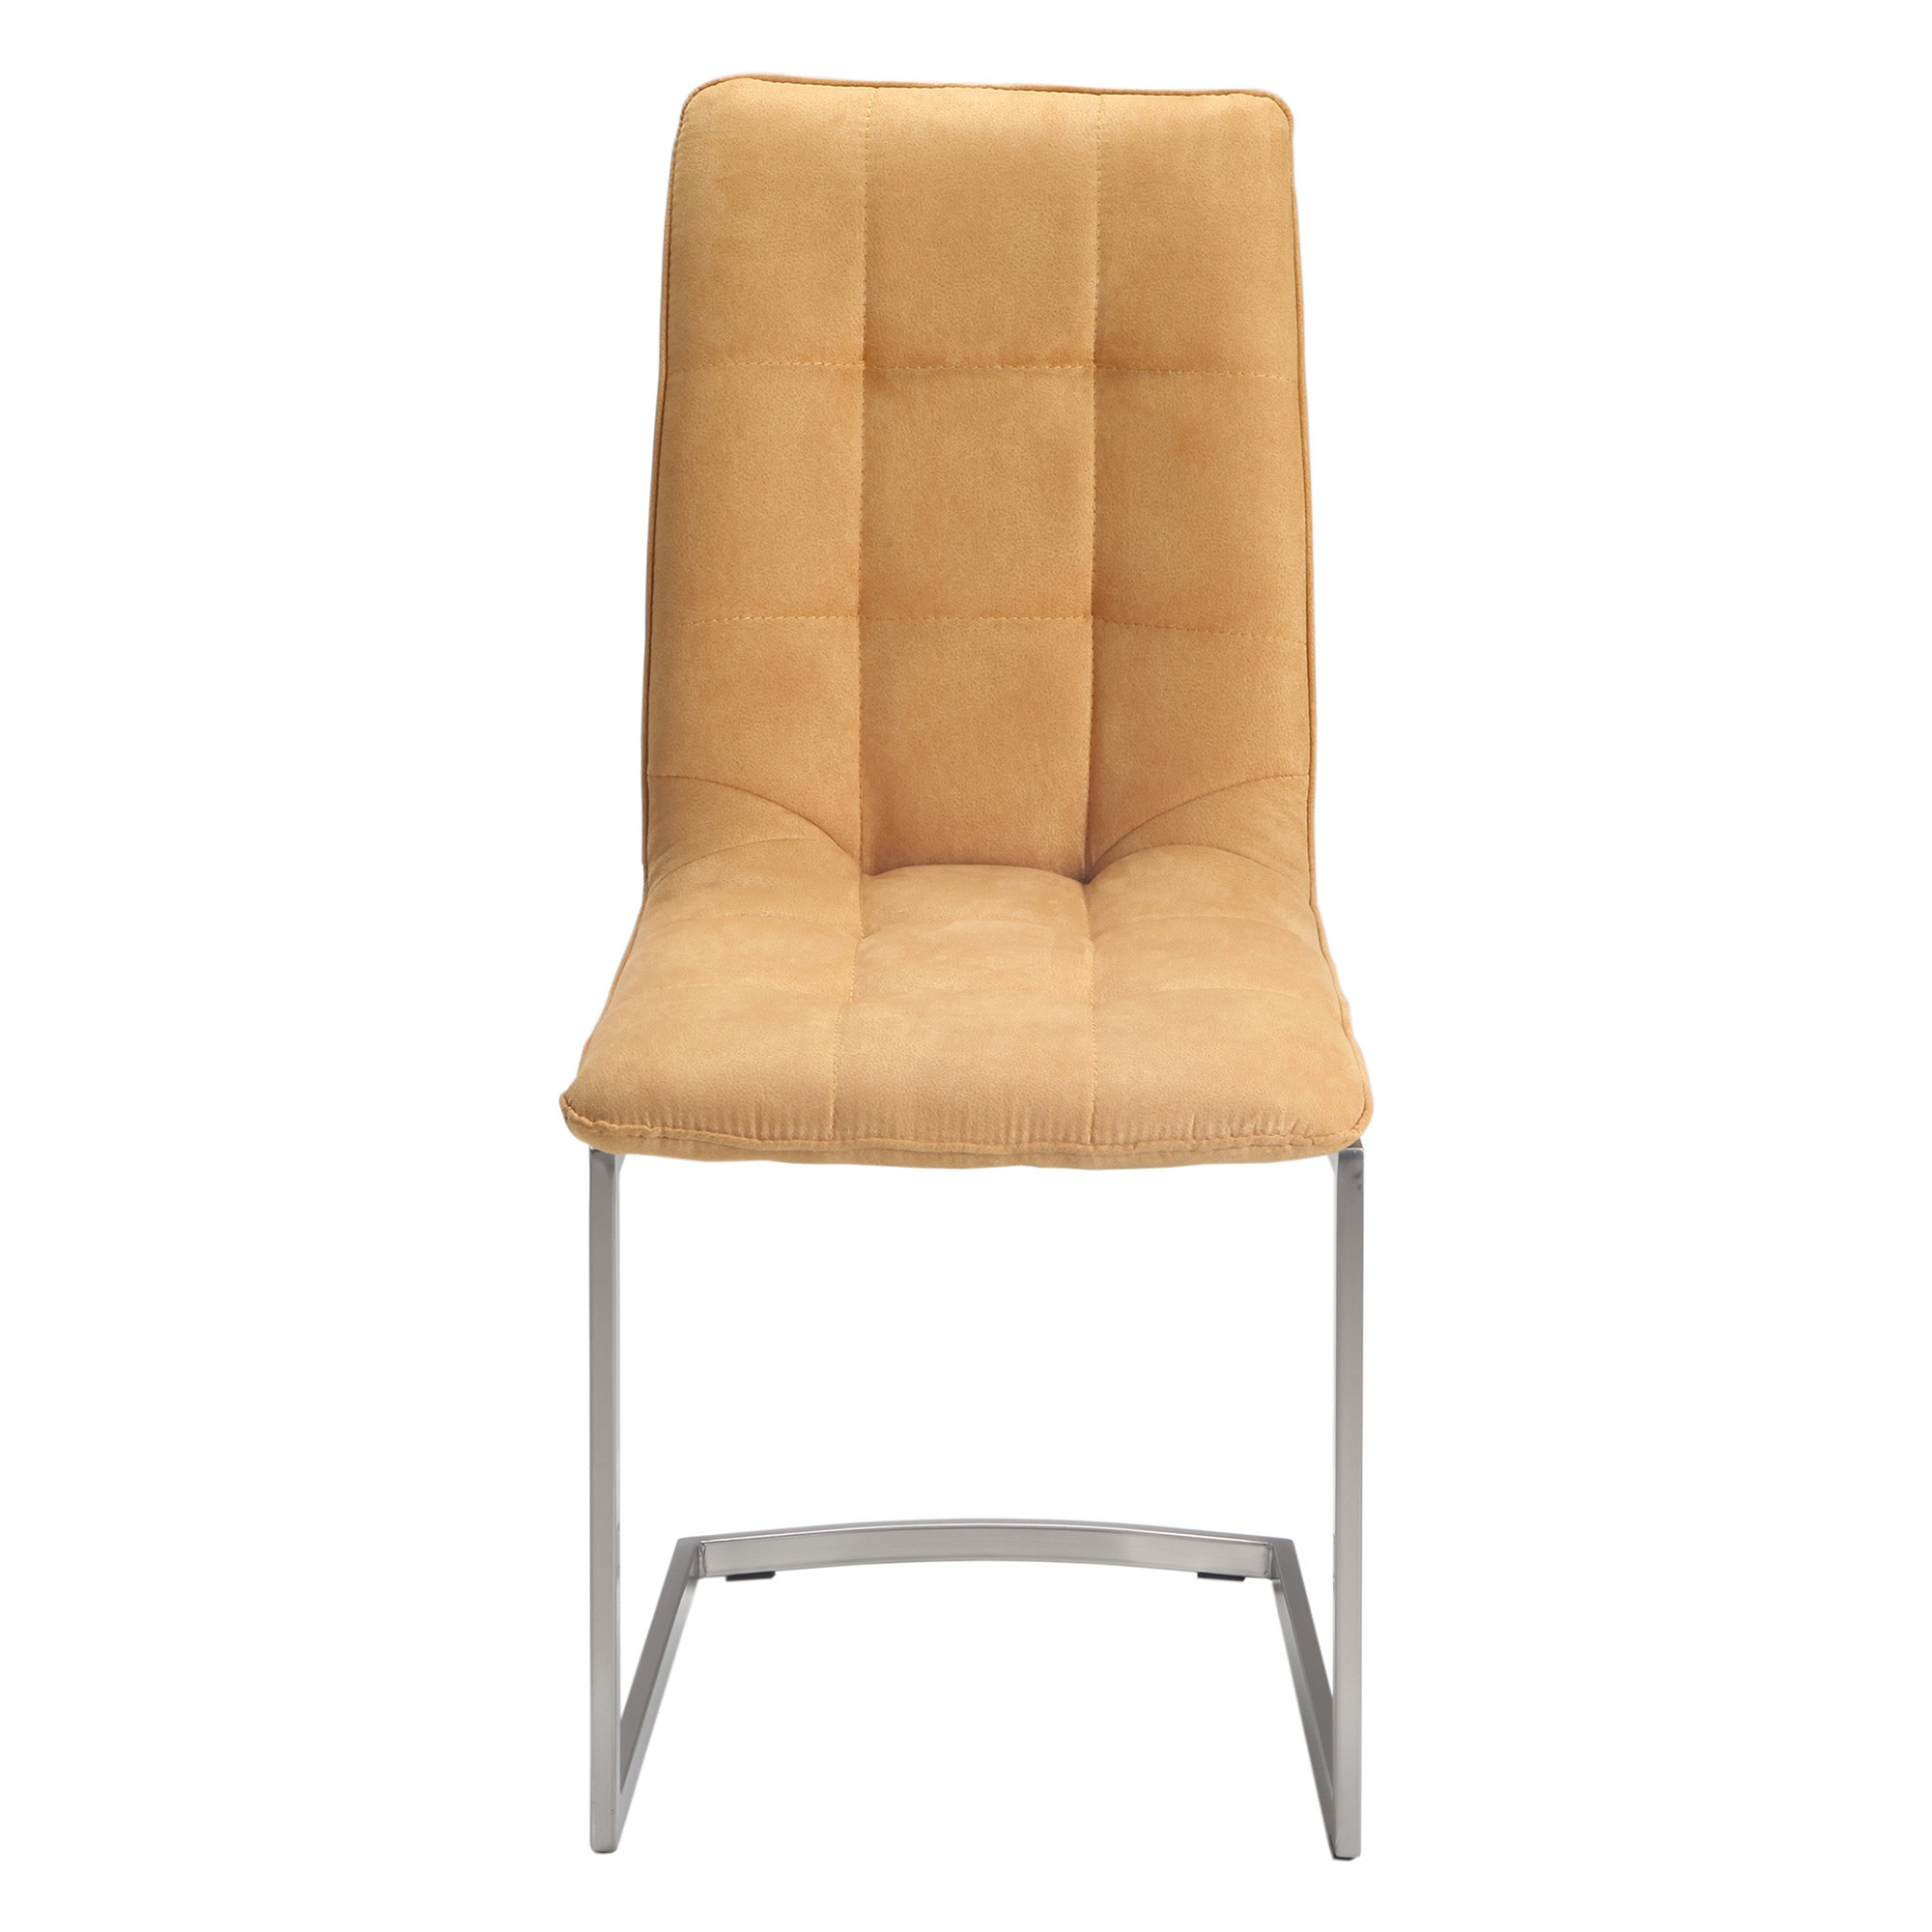 Hudson Ultrasuede Fabric Dining Chair, Ocher